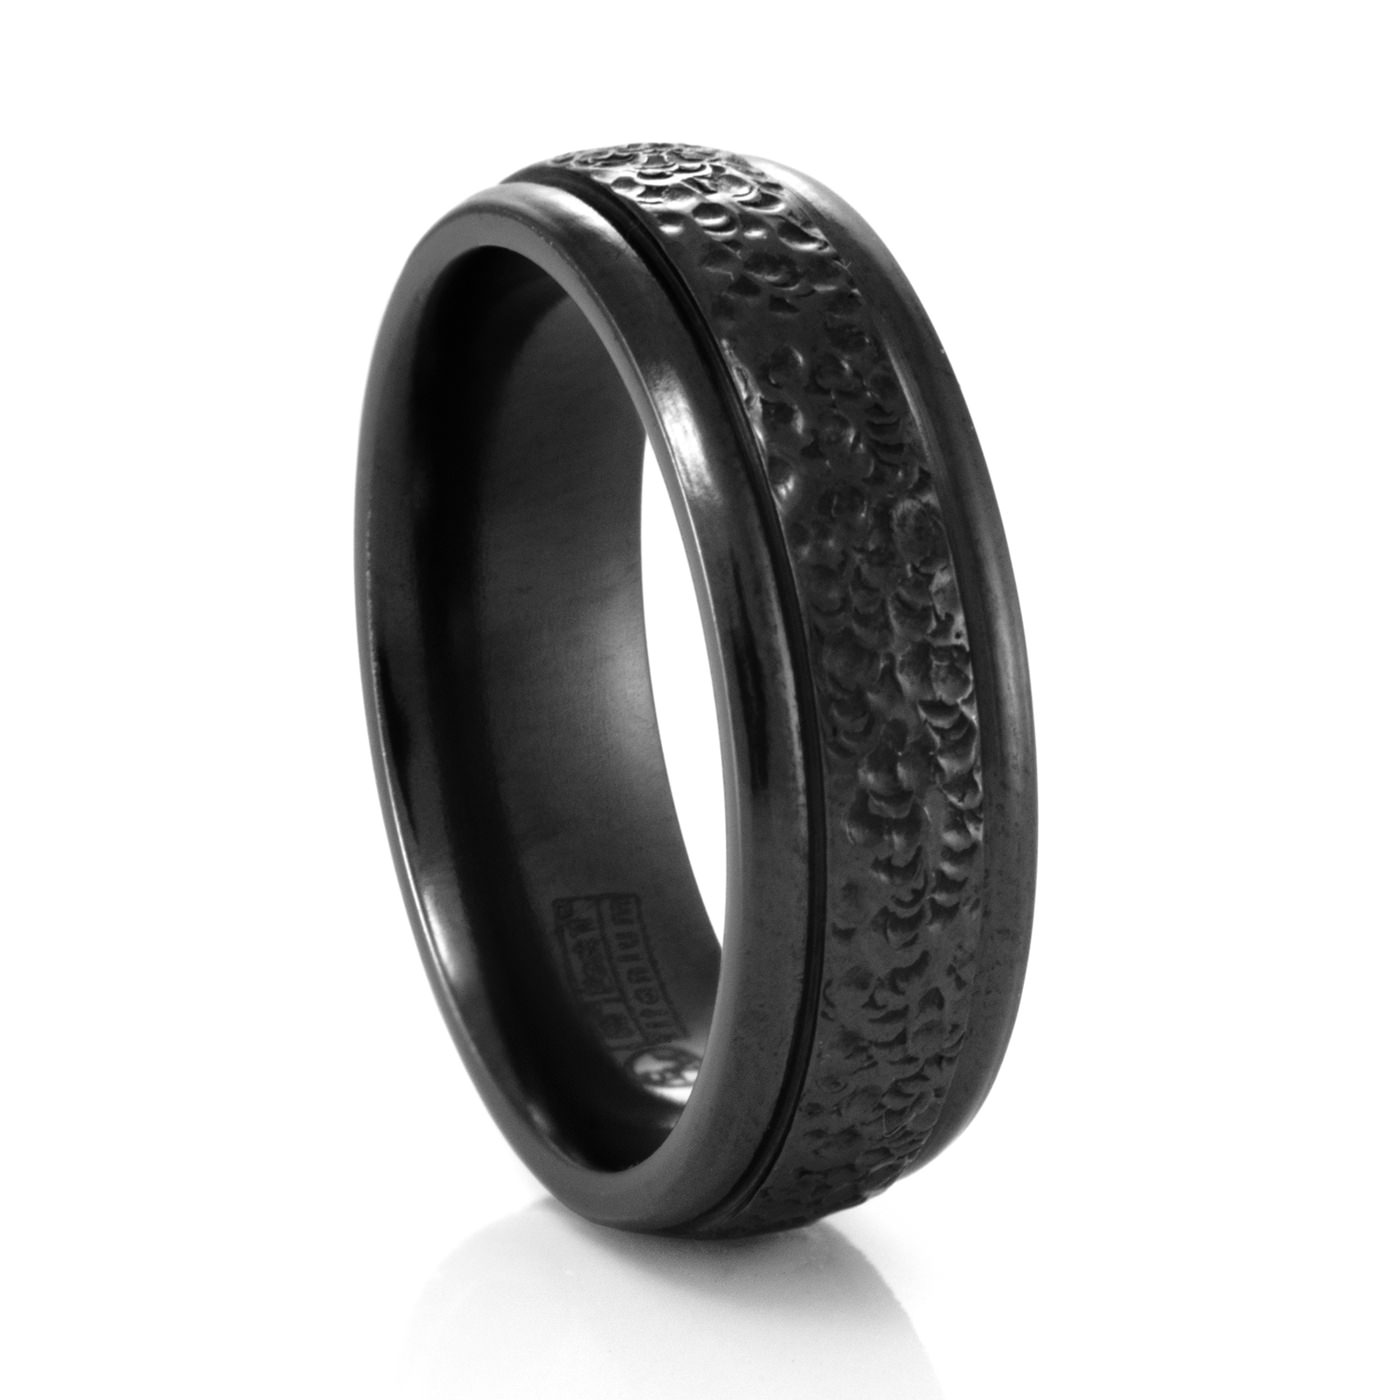 7MM Mens Hammered Finish Ring – Edward Mirell – Black Titanium Rings